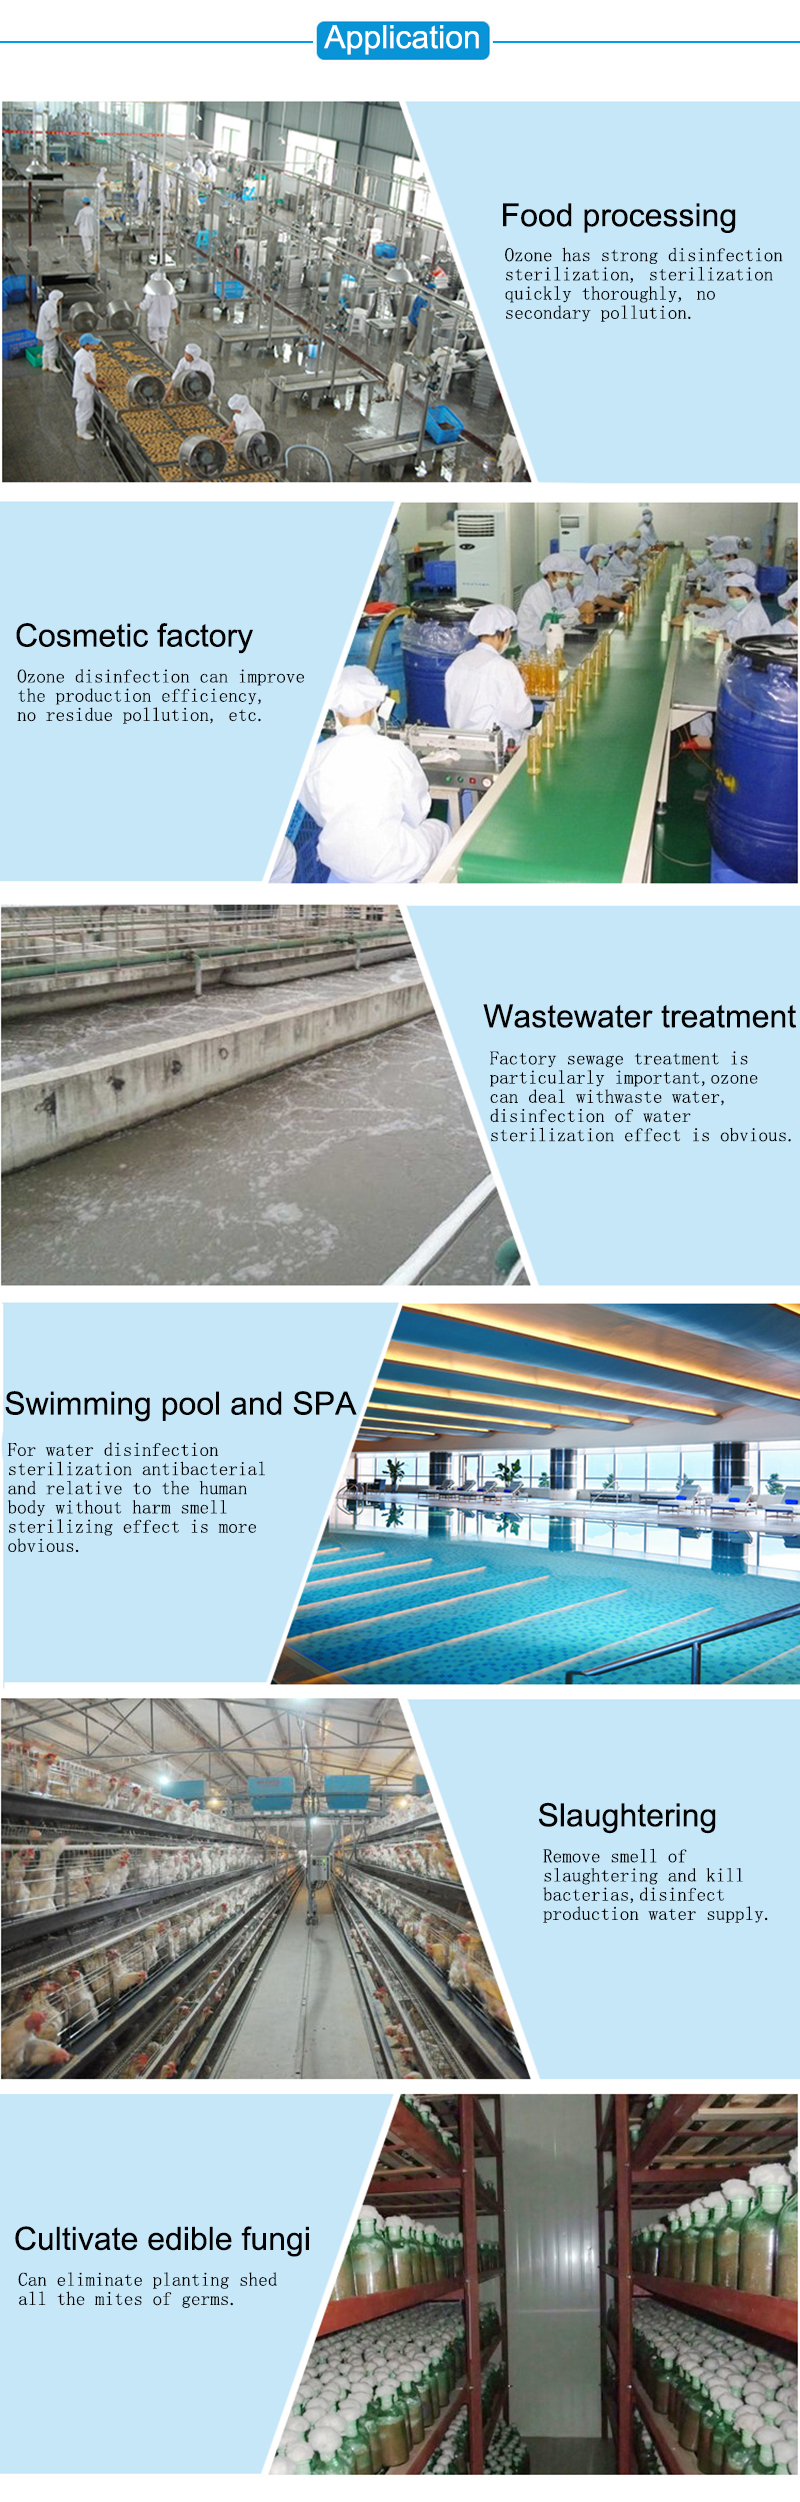 Hospital wastewater treatment ozonewastewater treatment plant ozone hospital wastewater treatment ozone wastewater treatment plant ozone system ozone generator for water treatment publicscrutiny Image collections